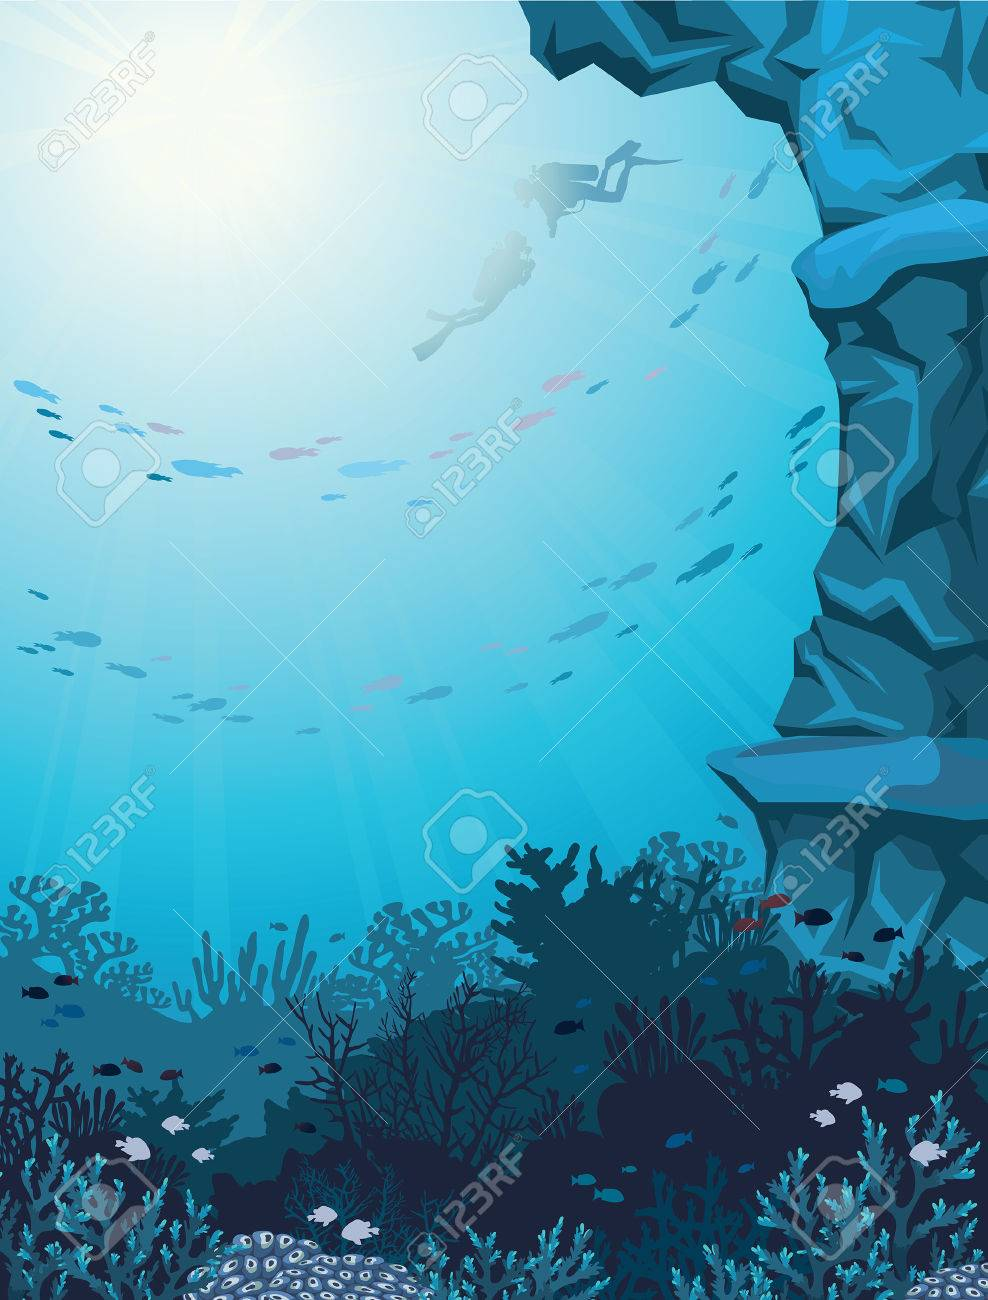 Two scuba divers and coral reef with school of fish on a blue seascape. Underwater vector illustration. - 46319701